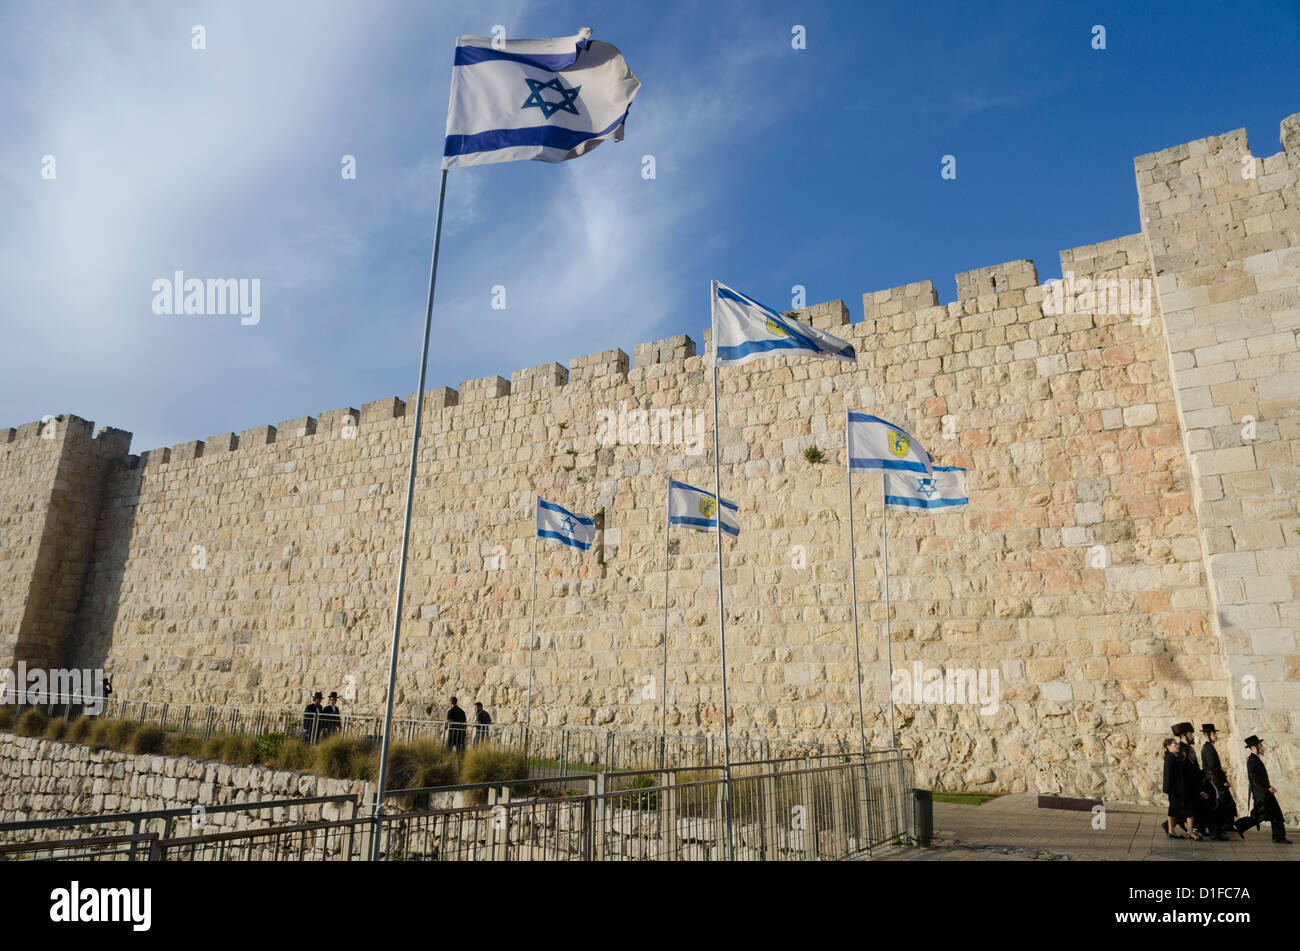 View of City Walls with Orthodox Jews and Israeli flag. Old City, Jerusalem, Israel, Middle East - Stock Image